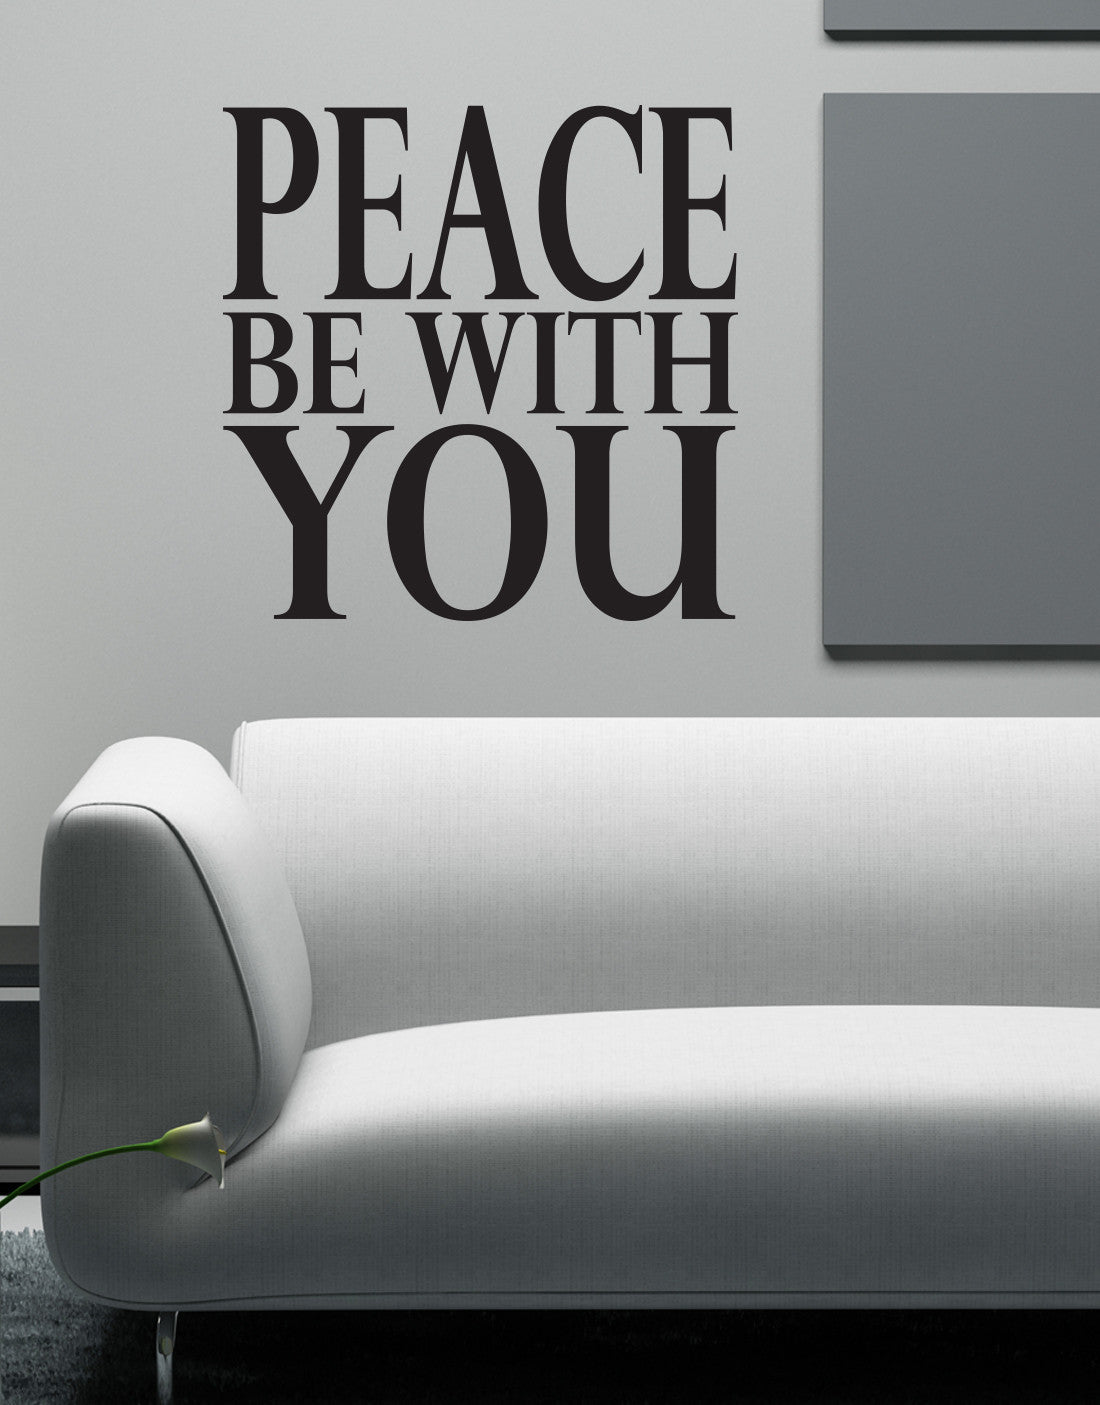 Vinyl Wall Decal Sticker Peace Be With You Quote 6004